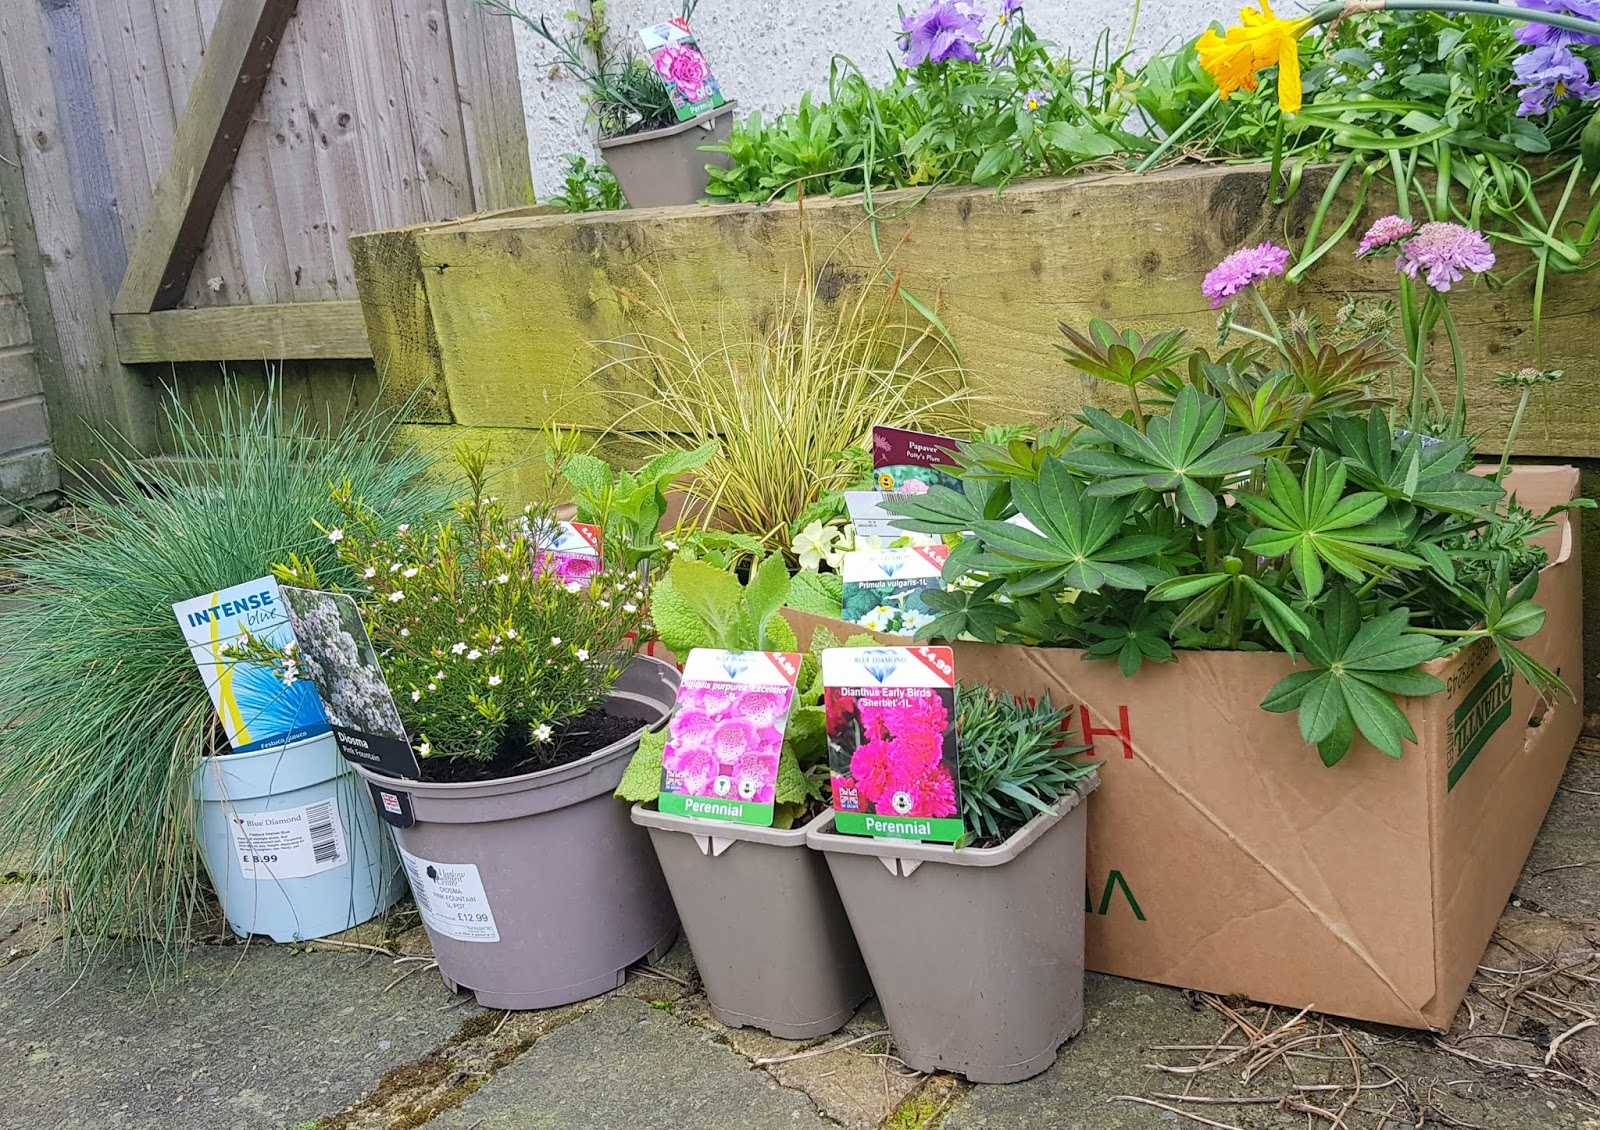 Selection of perennial plants bought just before the lock down started in London, UK, March 2020